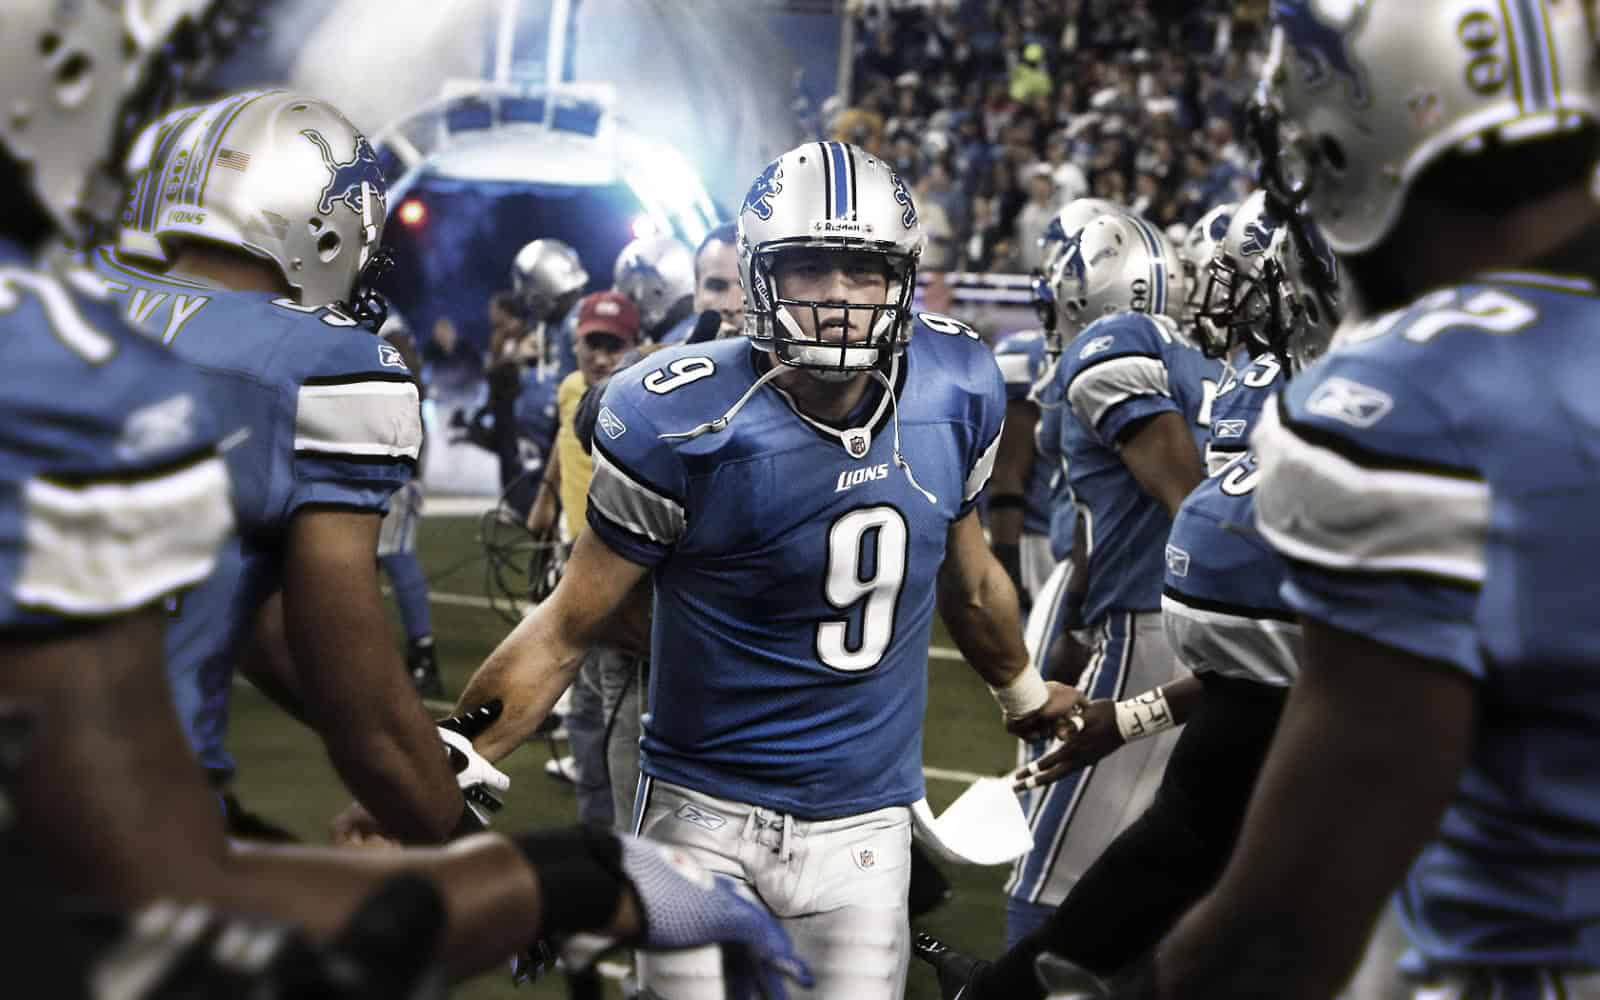 Courtesy of USA Today: This could be a career-defining game for Stafford.